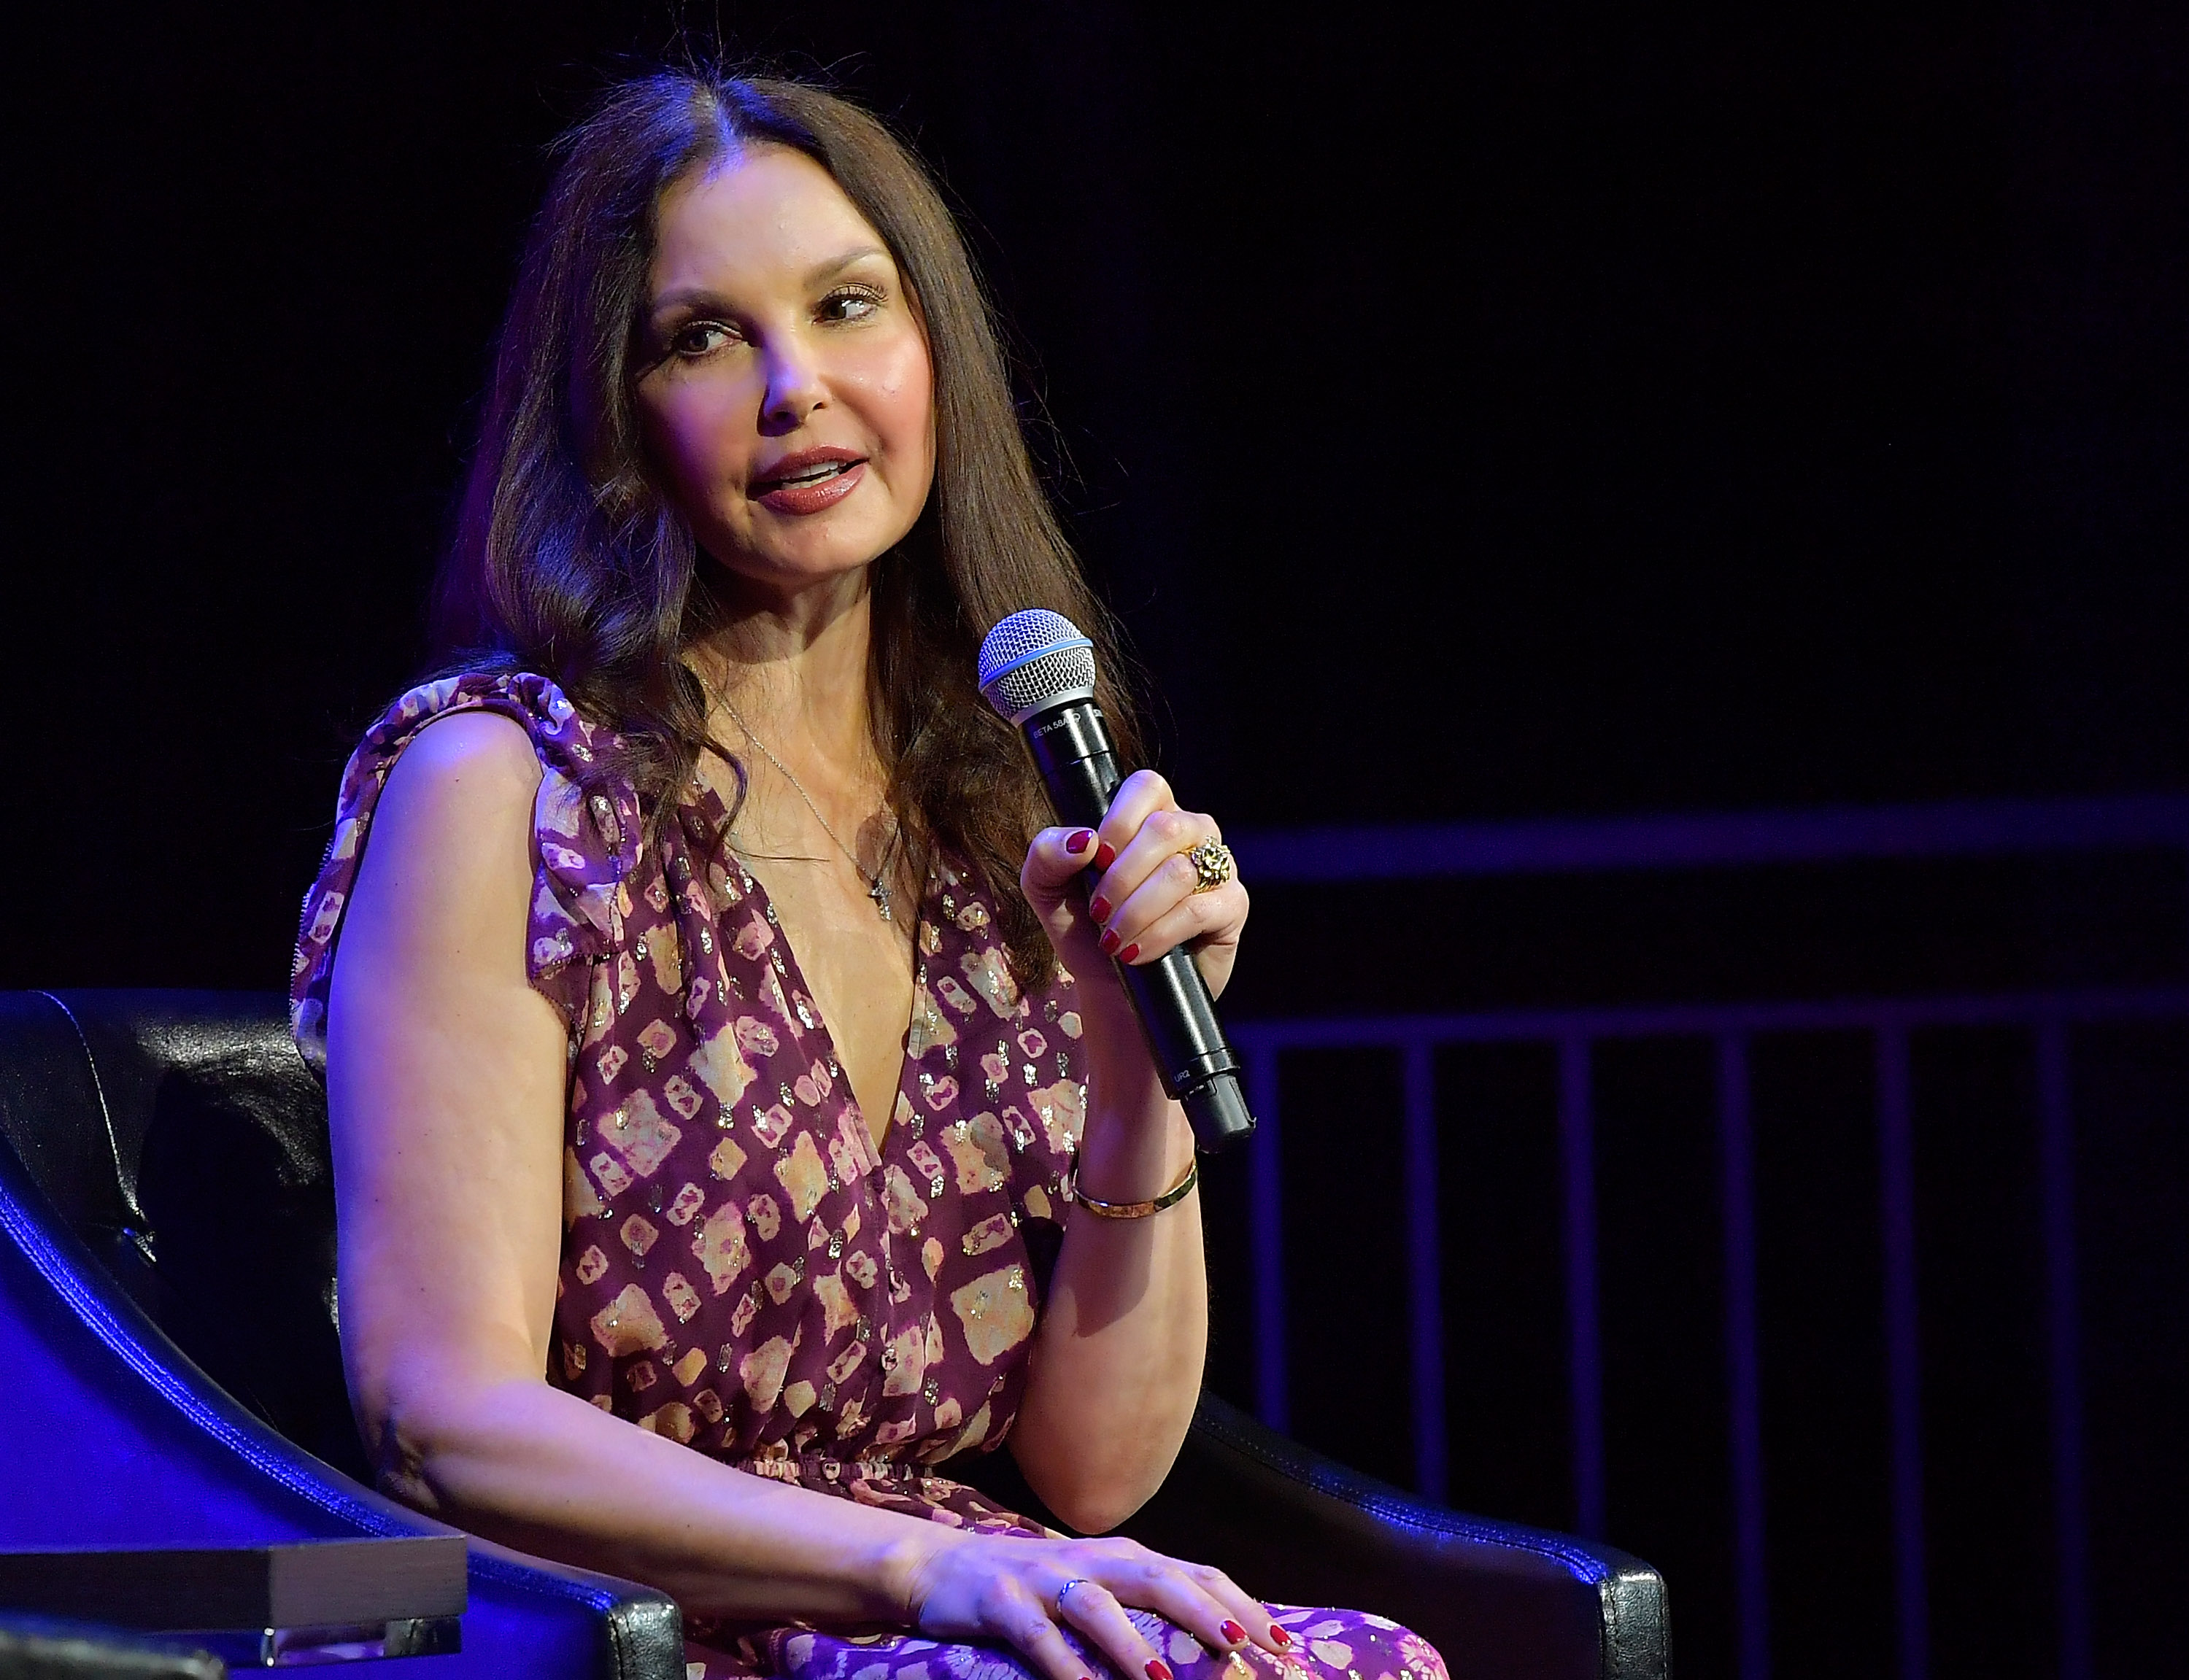 Ashley Judd speaks onstage at  Time's Up  during the 2018 Tribeca Film Festival at Spring Studios on April 28, 2018 in New York City.